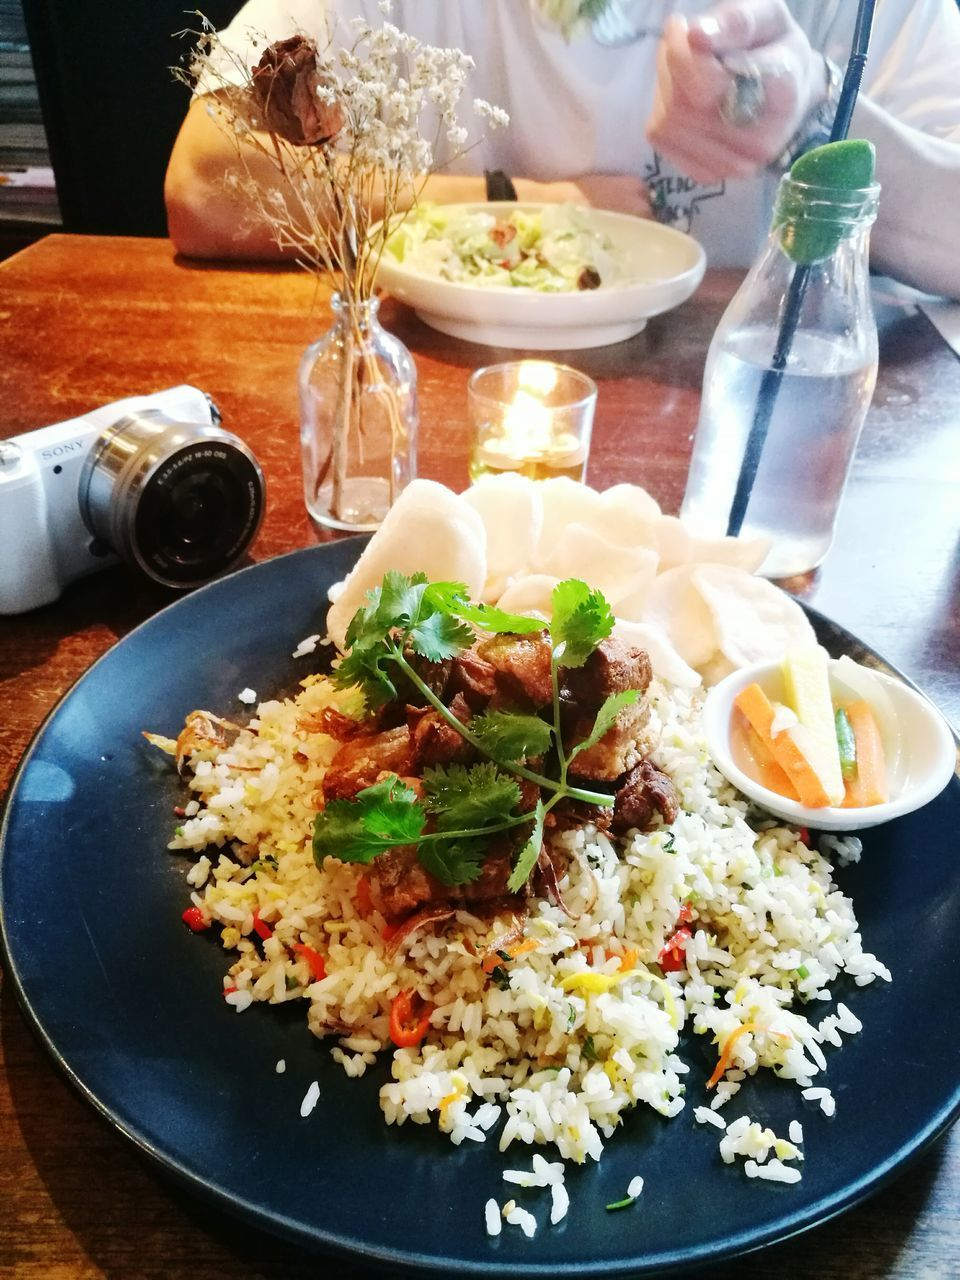 food and drink, plate, food, table, serving size, ready-to-eat, freshness, healthy eating, rice - food staple, indoors, no people, close-up, meal, fried rice, day